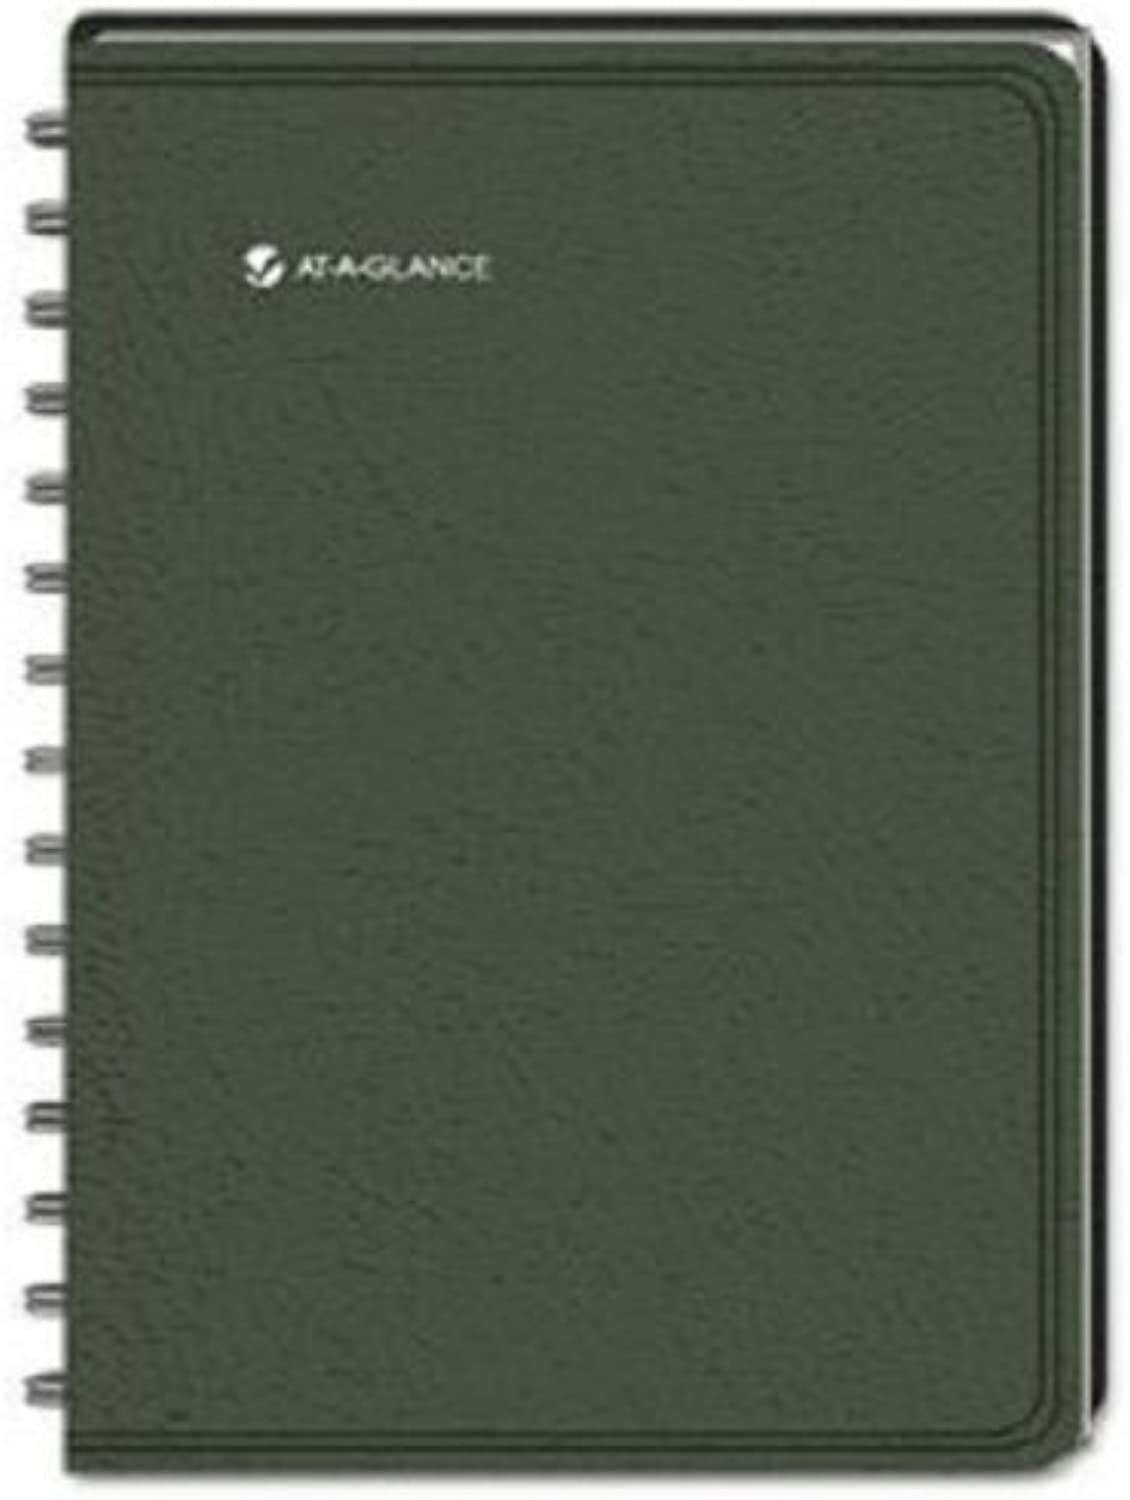 AT-A-GLANCE Recycled Monthly Planner, 9 x 11 Inches, schwarz, 2013 2013 2013 (70-260G-05) by Mead (Dated Office Supplies) B018OQZF10 | Ermäßigung  e32128